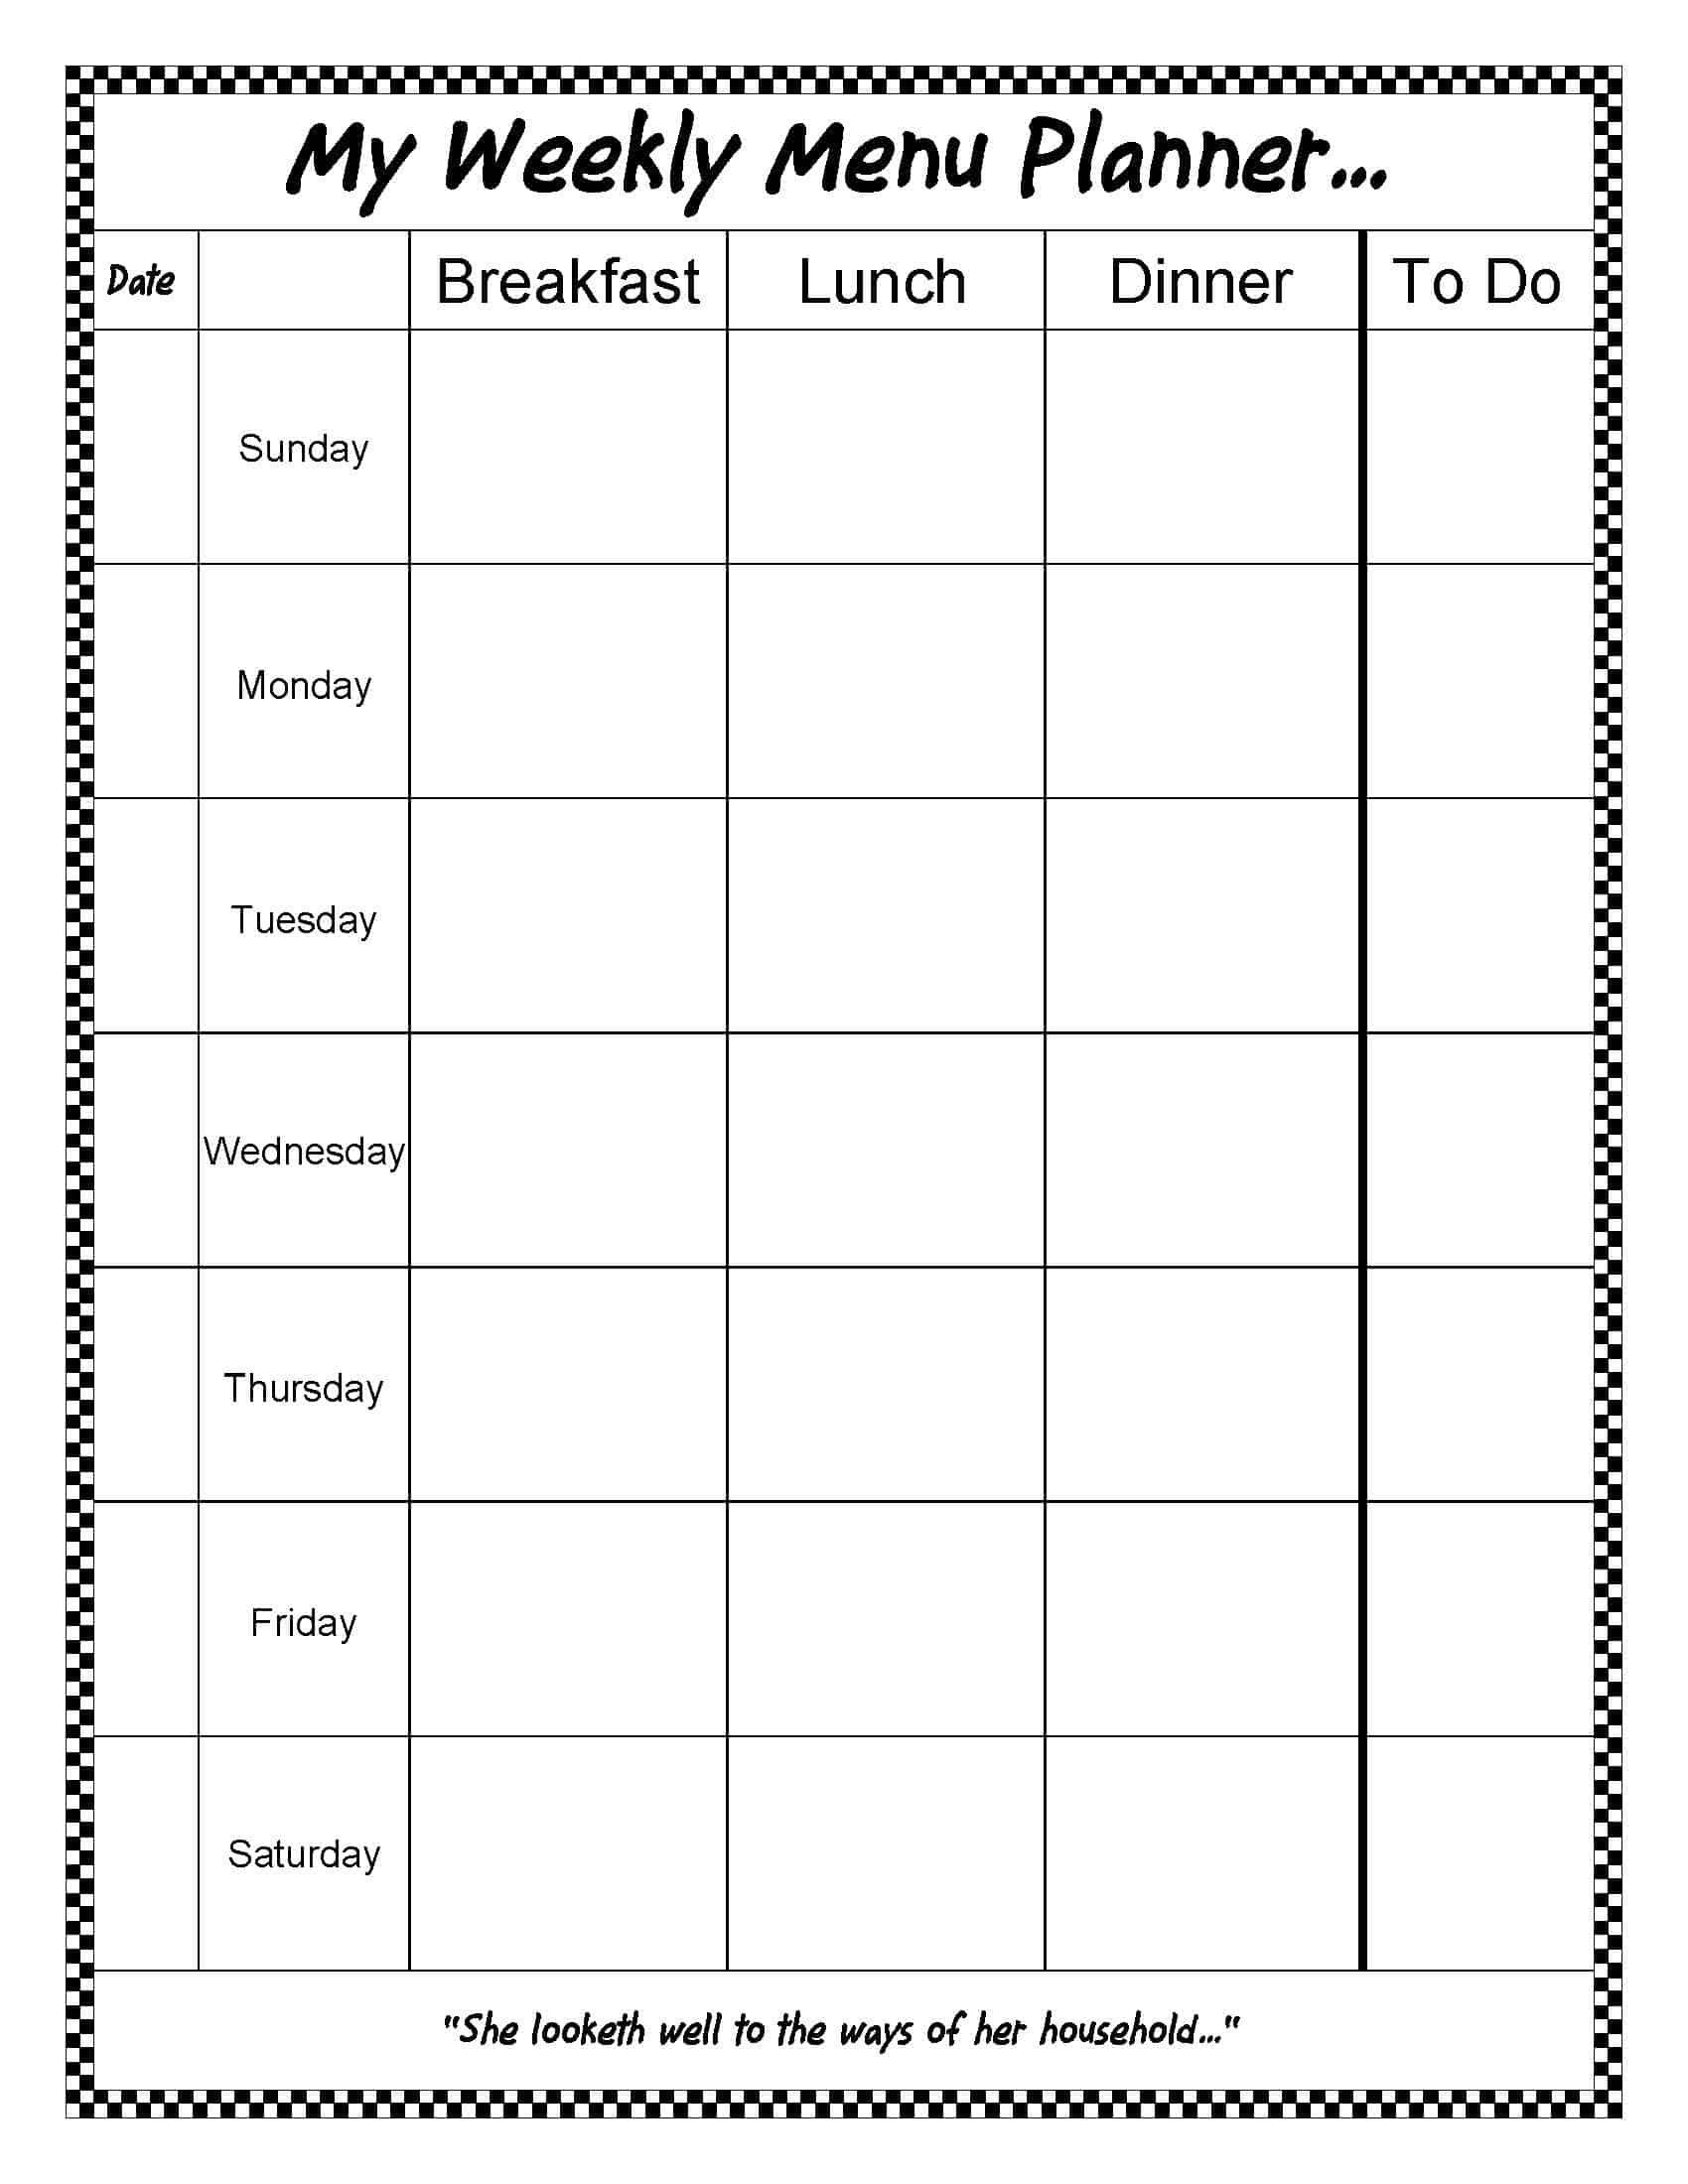 a gift for youan editable weekly menu planner - sheri graham